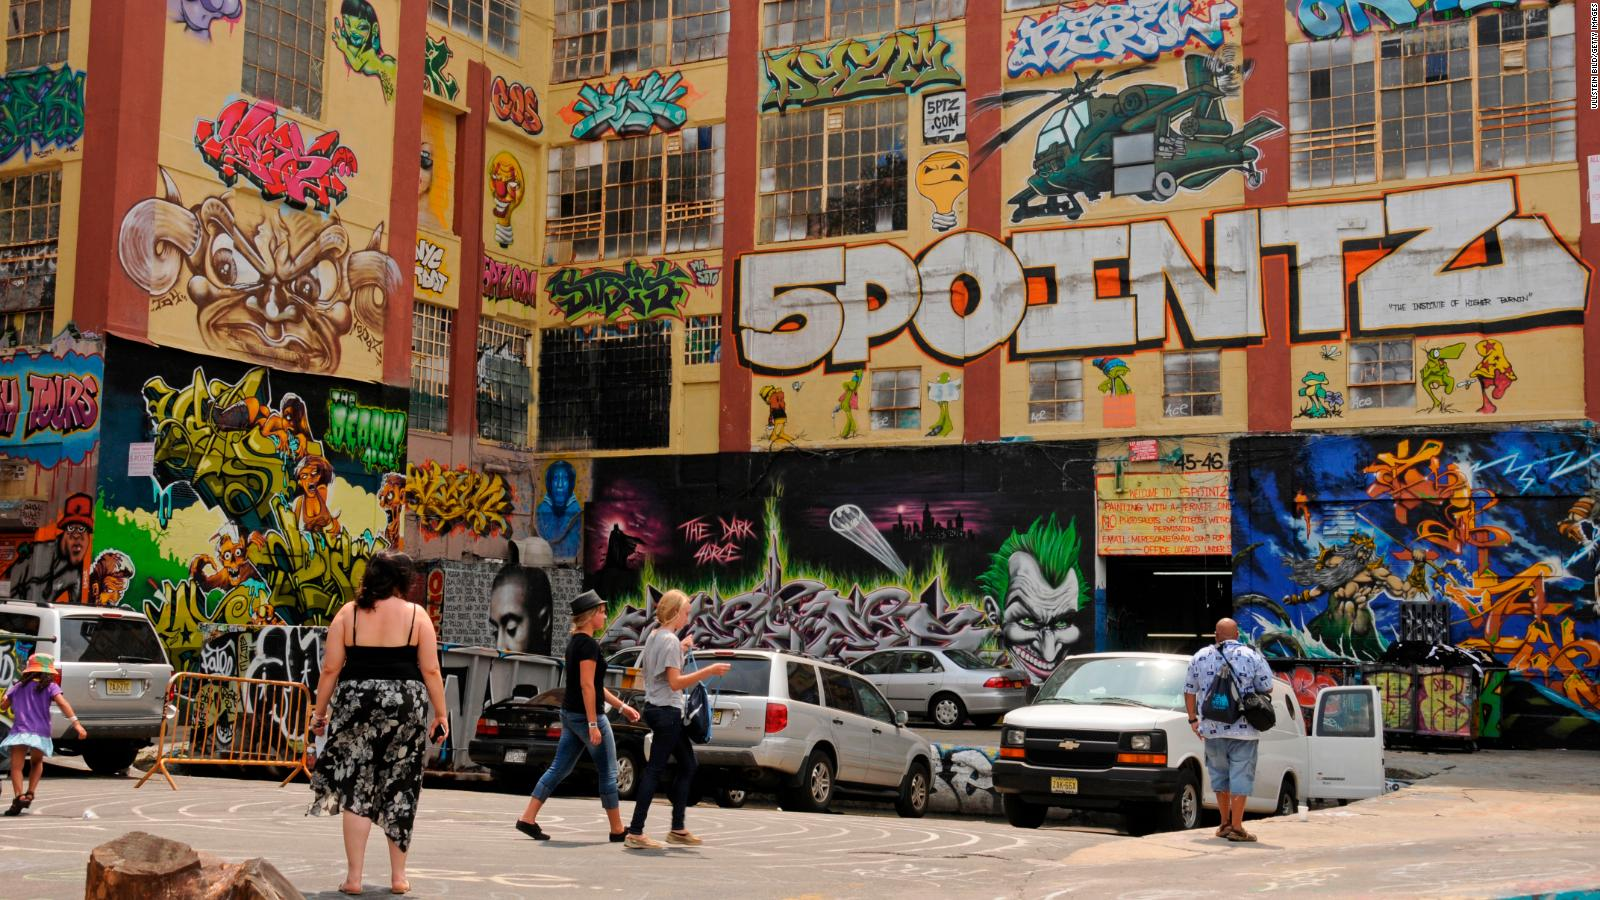 5Pointz Graffiti Artists Awarded 6 7 Million After Their Work Was Destroyed Cnn